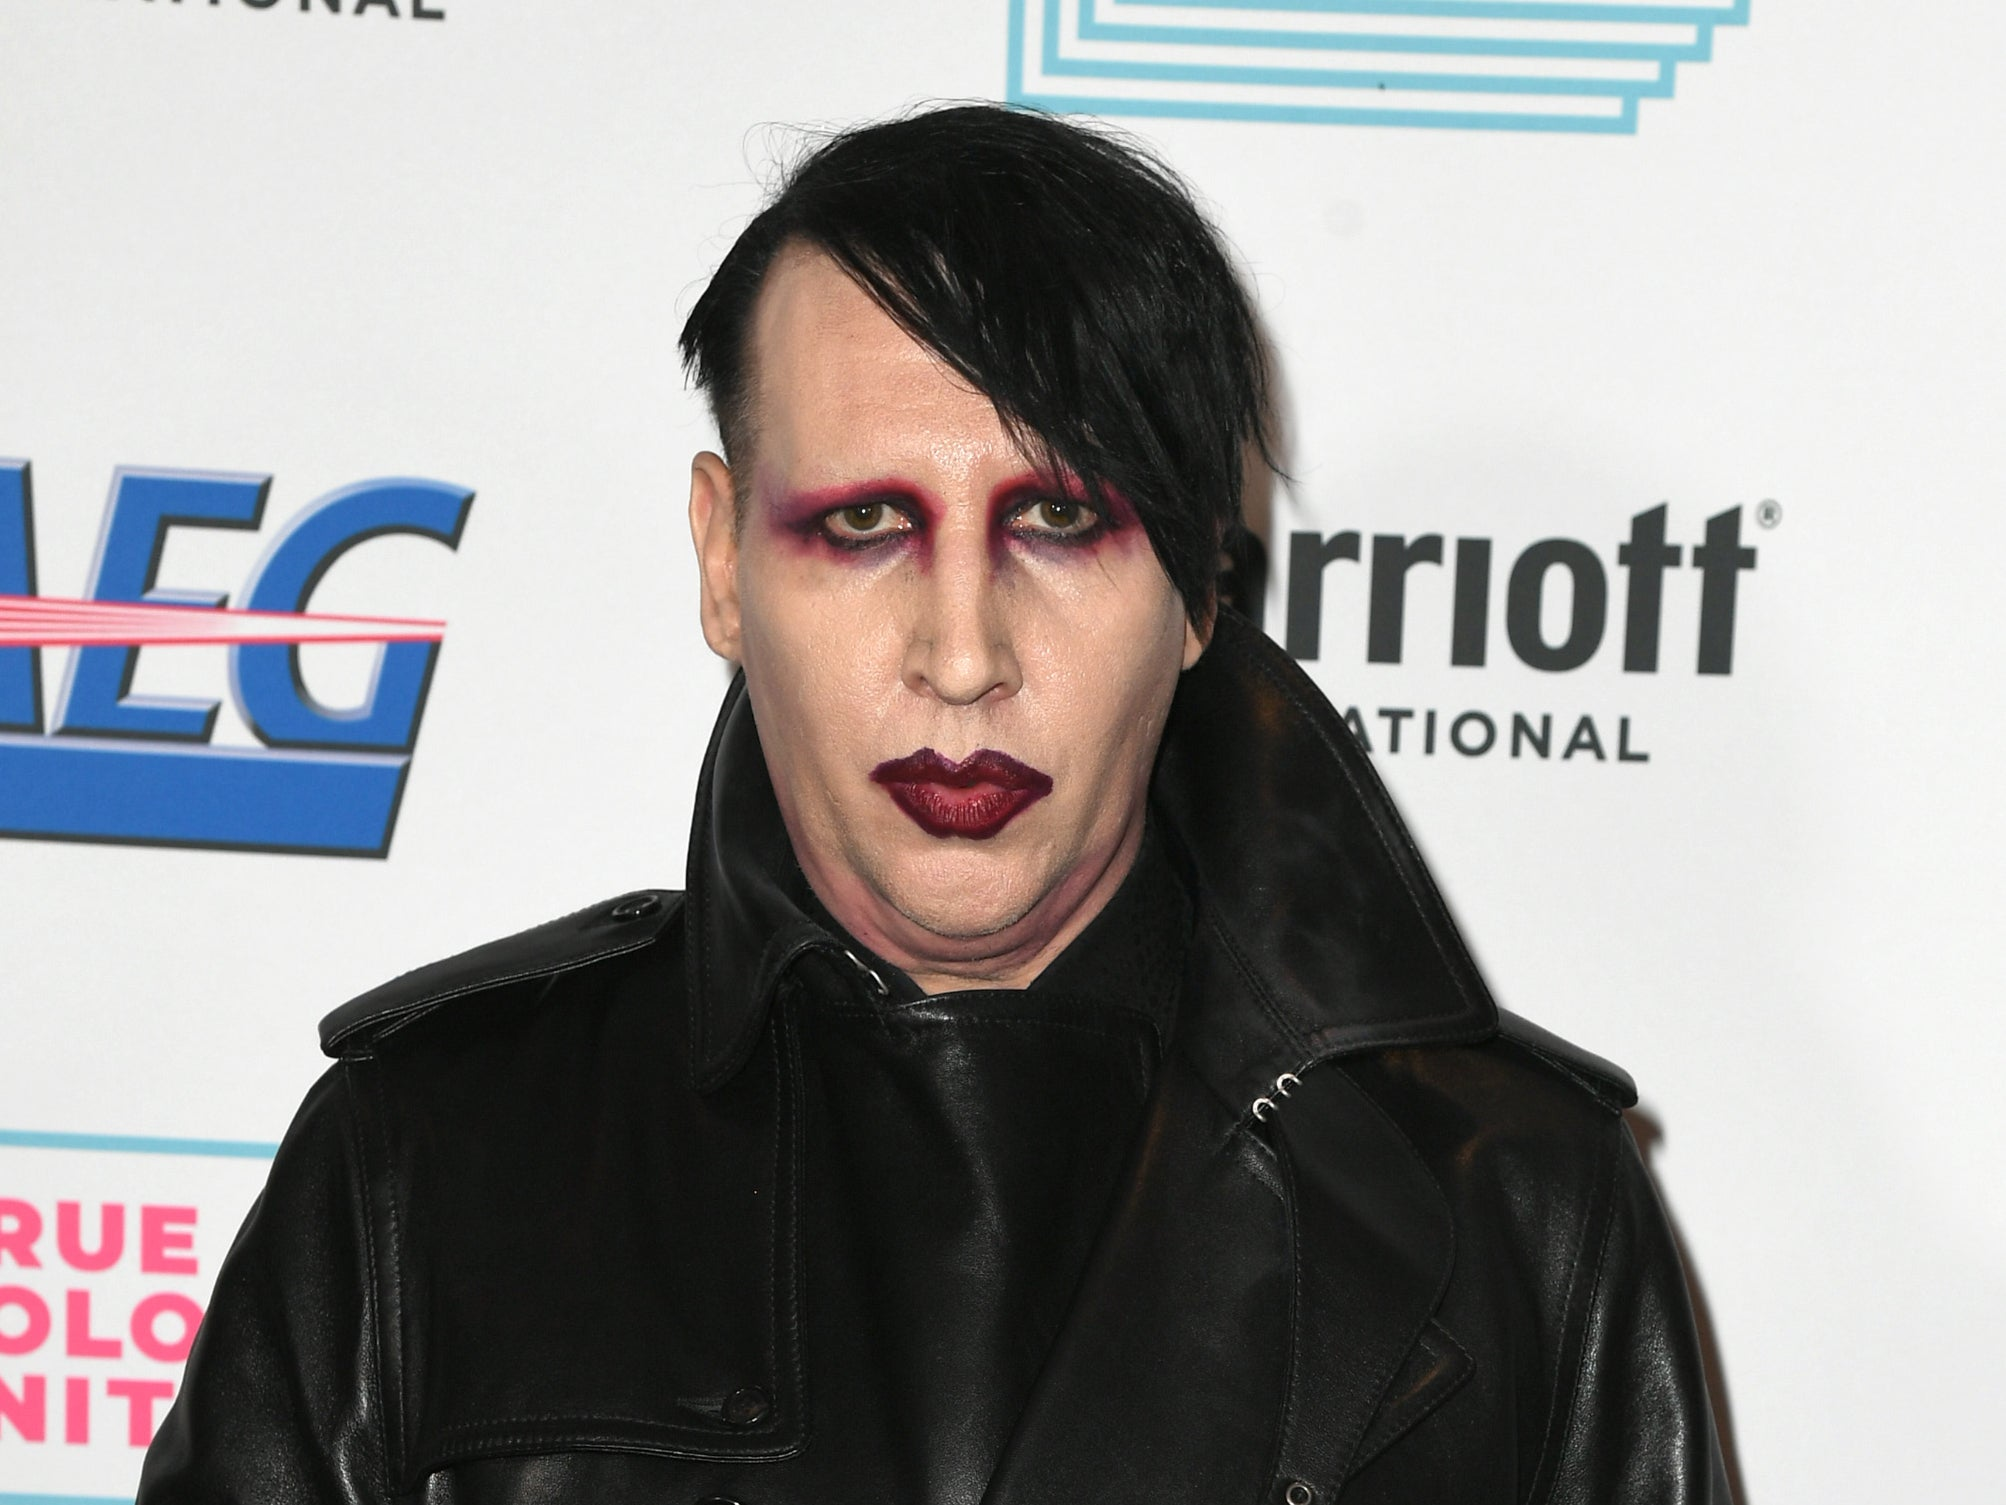 Marilyn Manson dropped by talent agency CAA in wake of abuse allegations